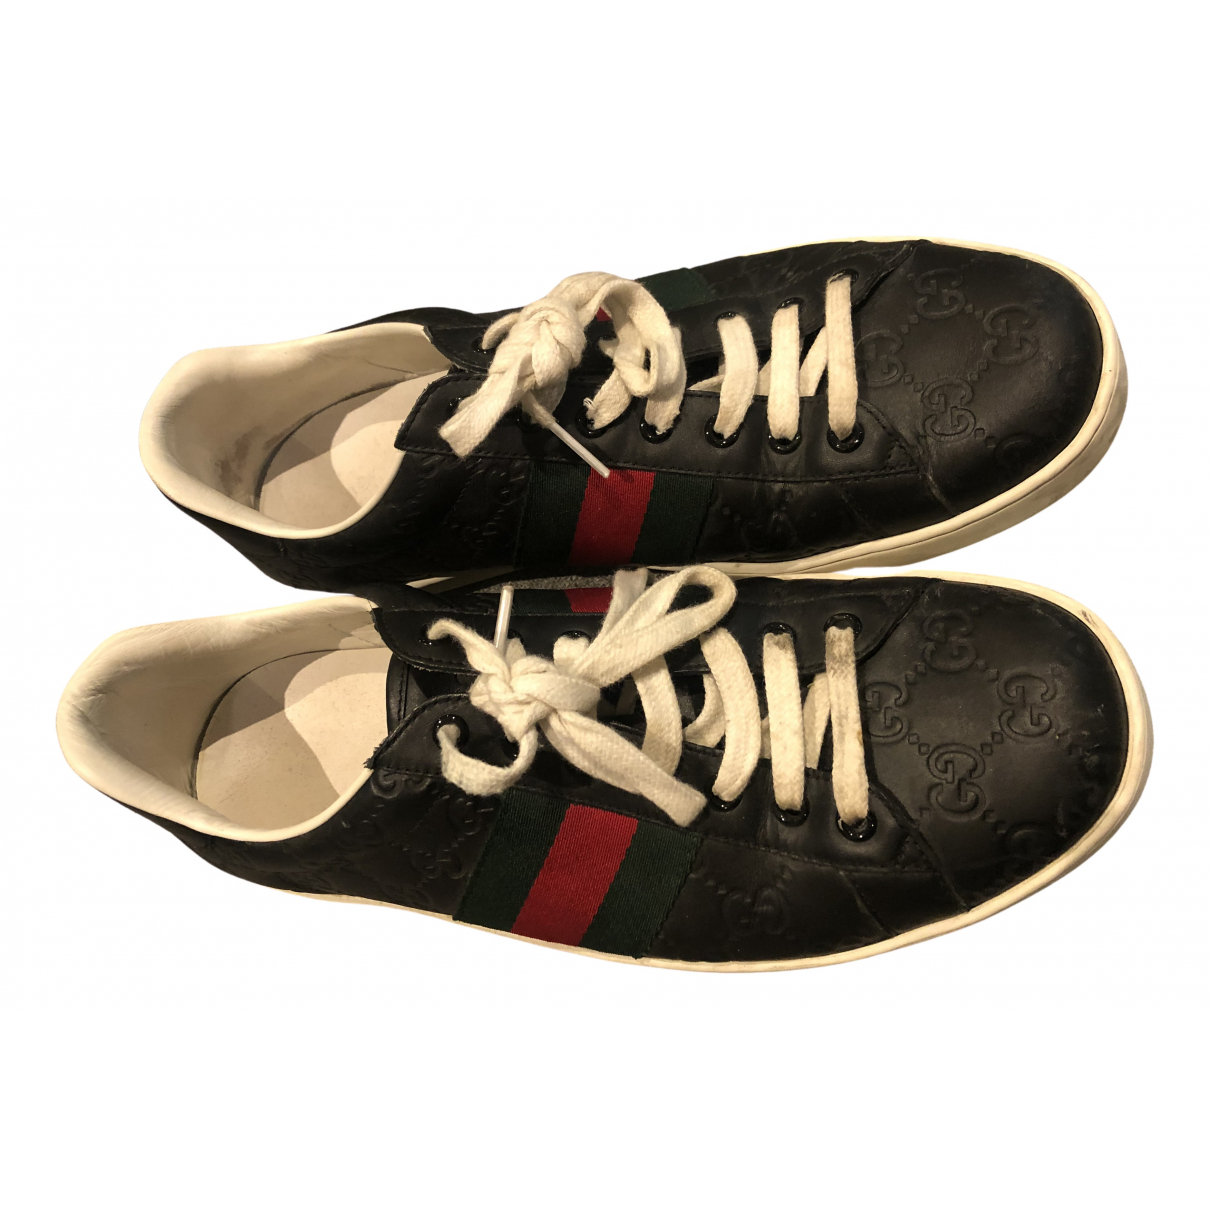 Gucci Ace Black Leather Trainers for Men 9.5 UK